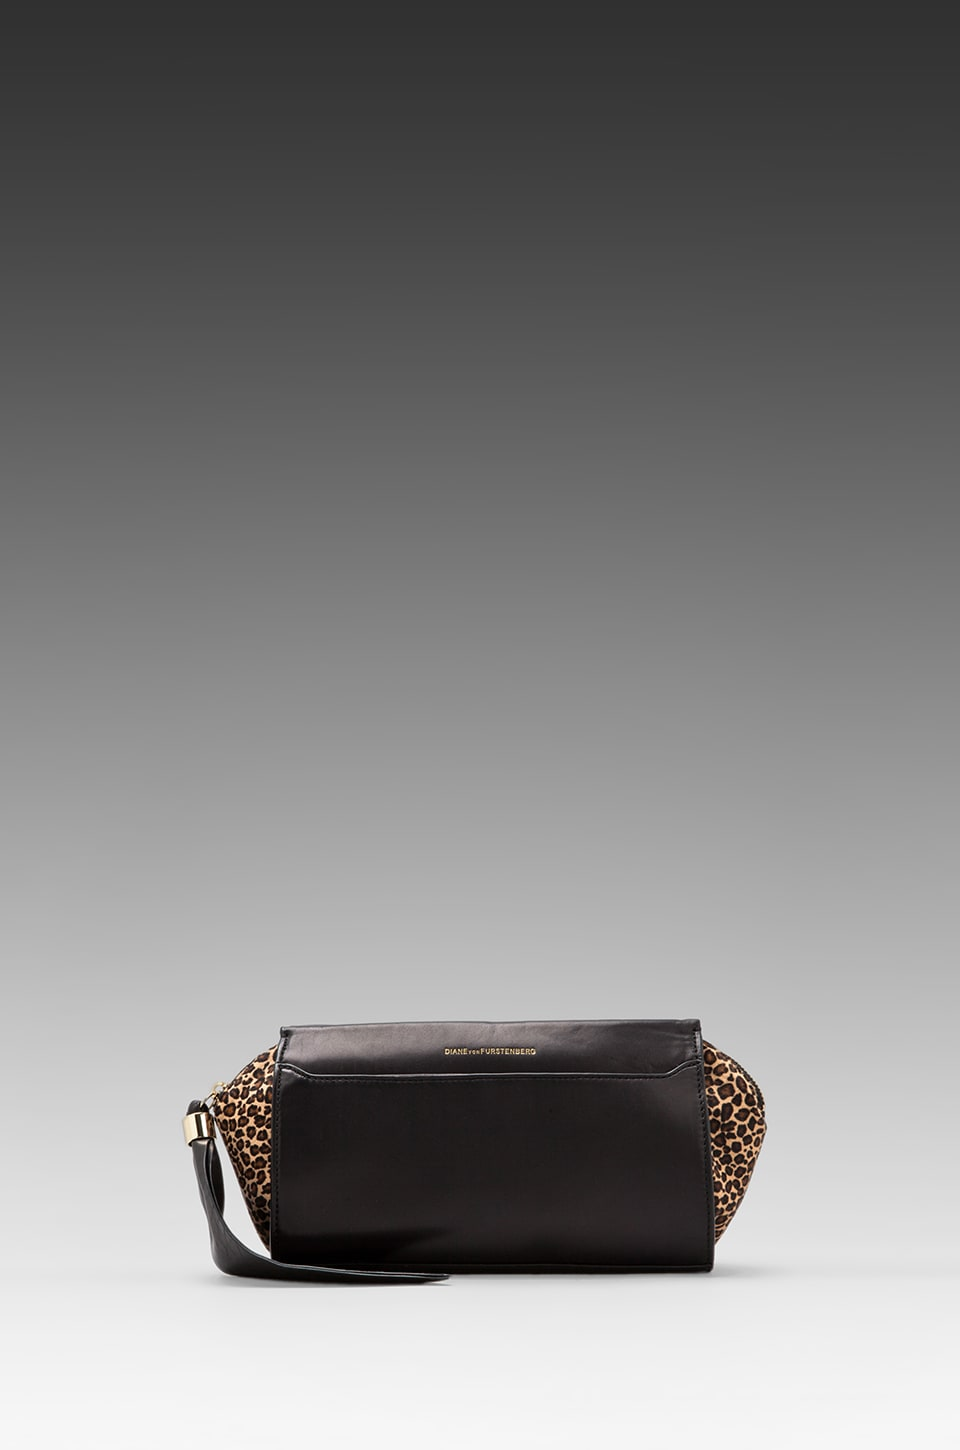 Diane von Furstenberg Zip-and-Go Clutch in Black